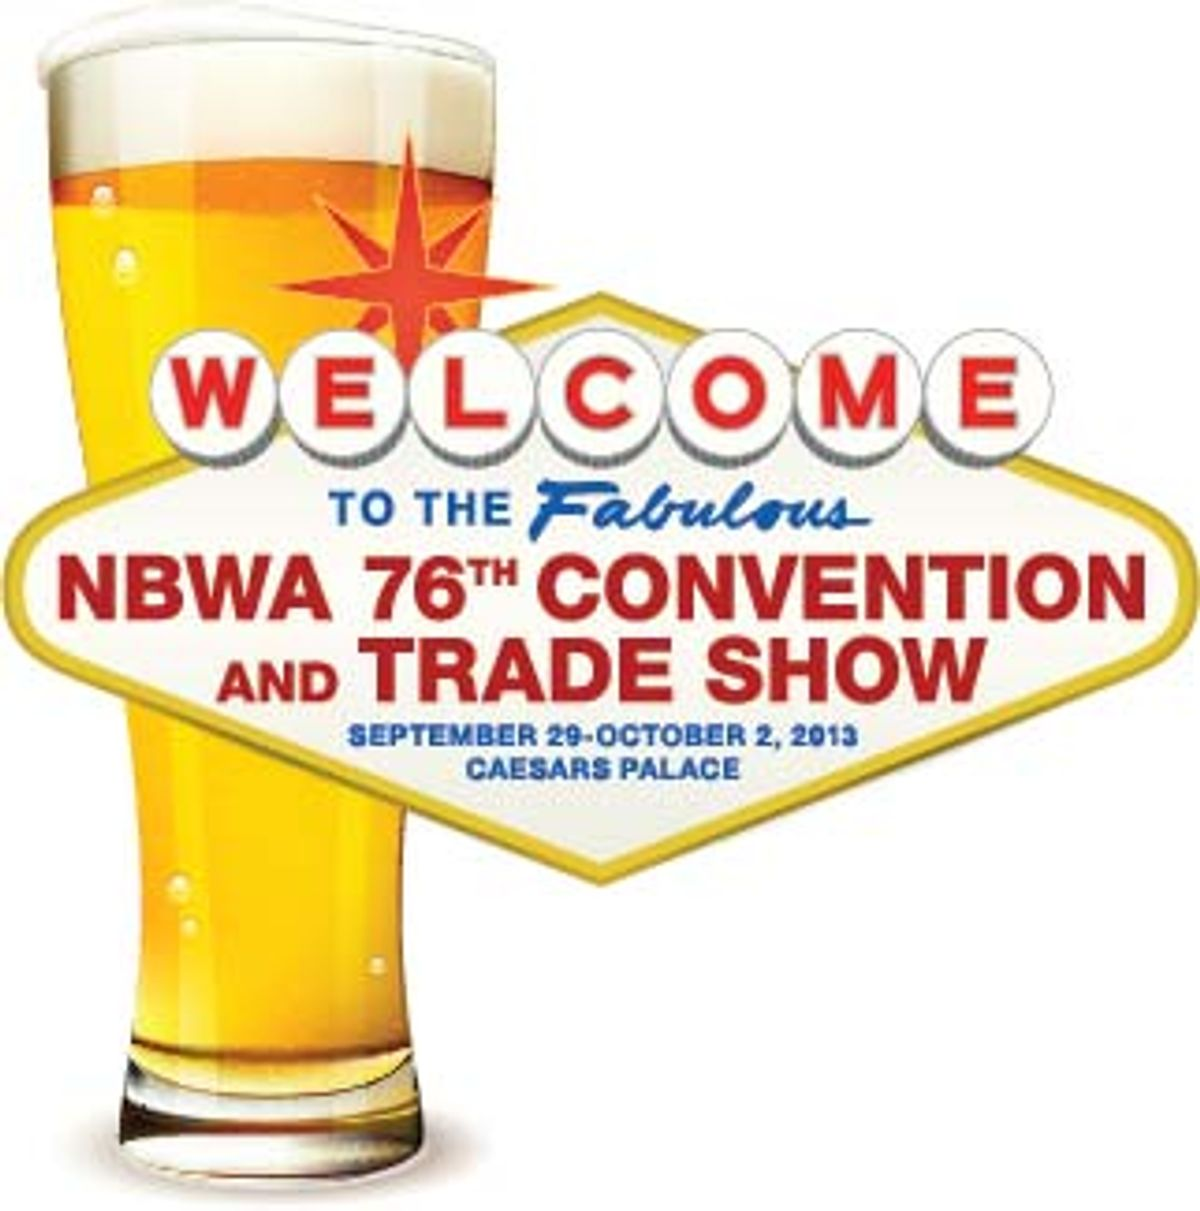 Penske Truck Leasing Exhibiting at NBWA Annual Convention